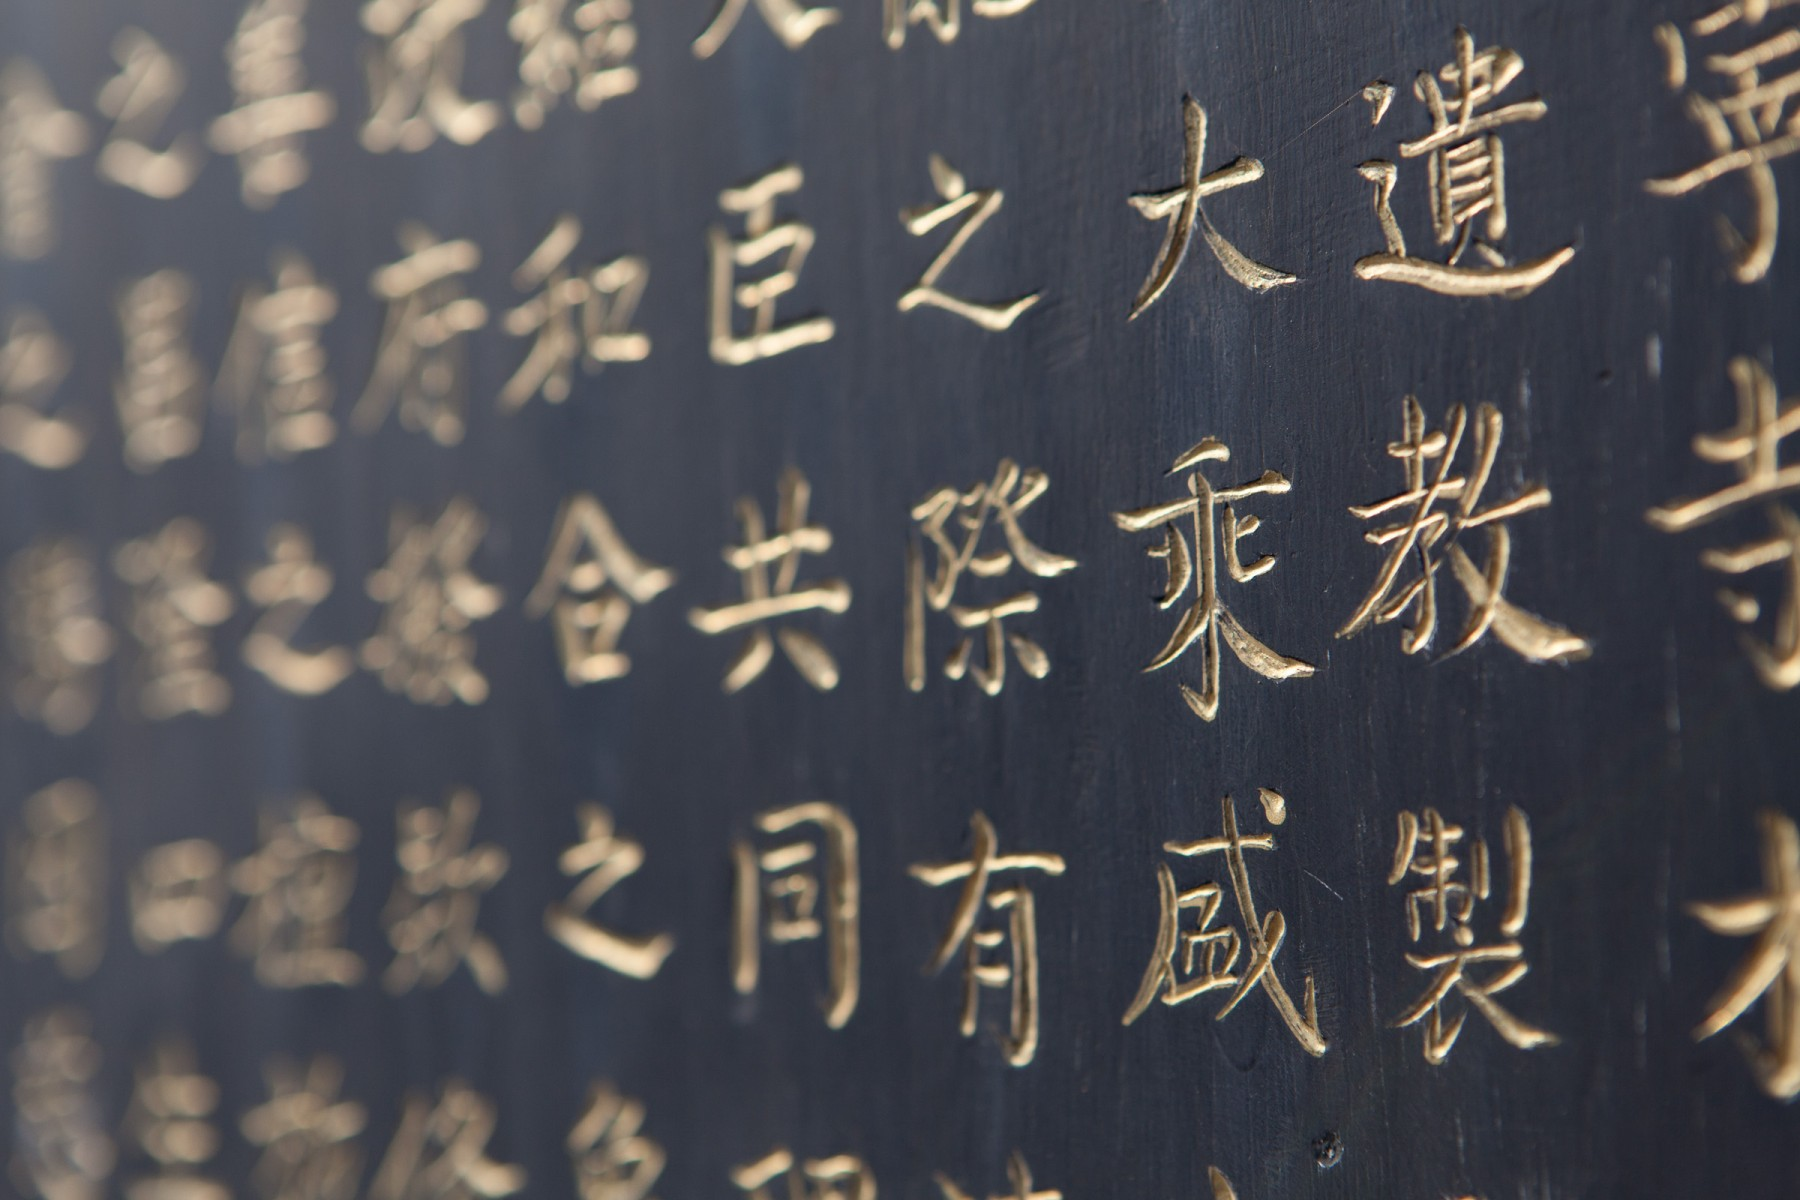 Chinese characters inscribed on a wall in Beijing, China.